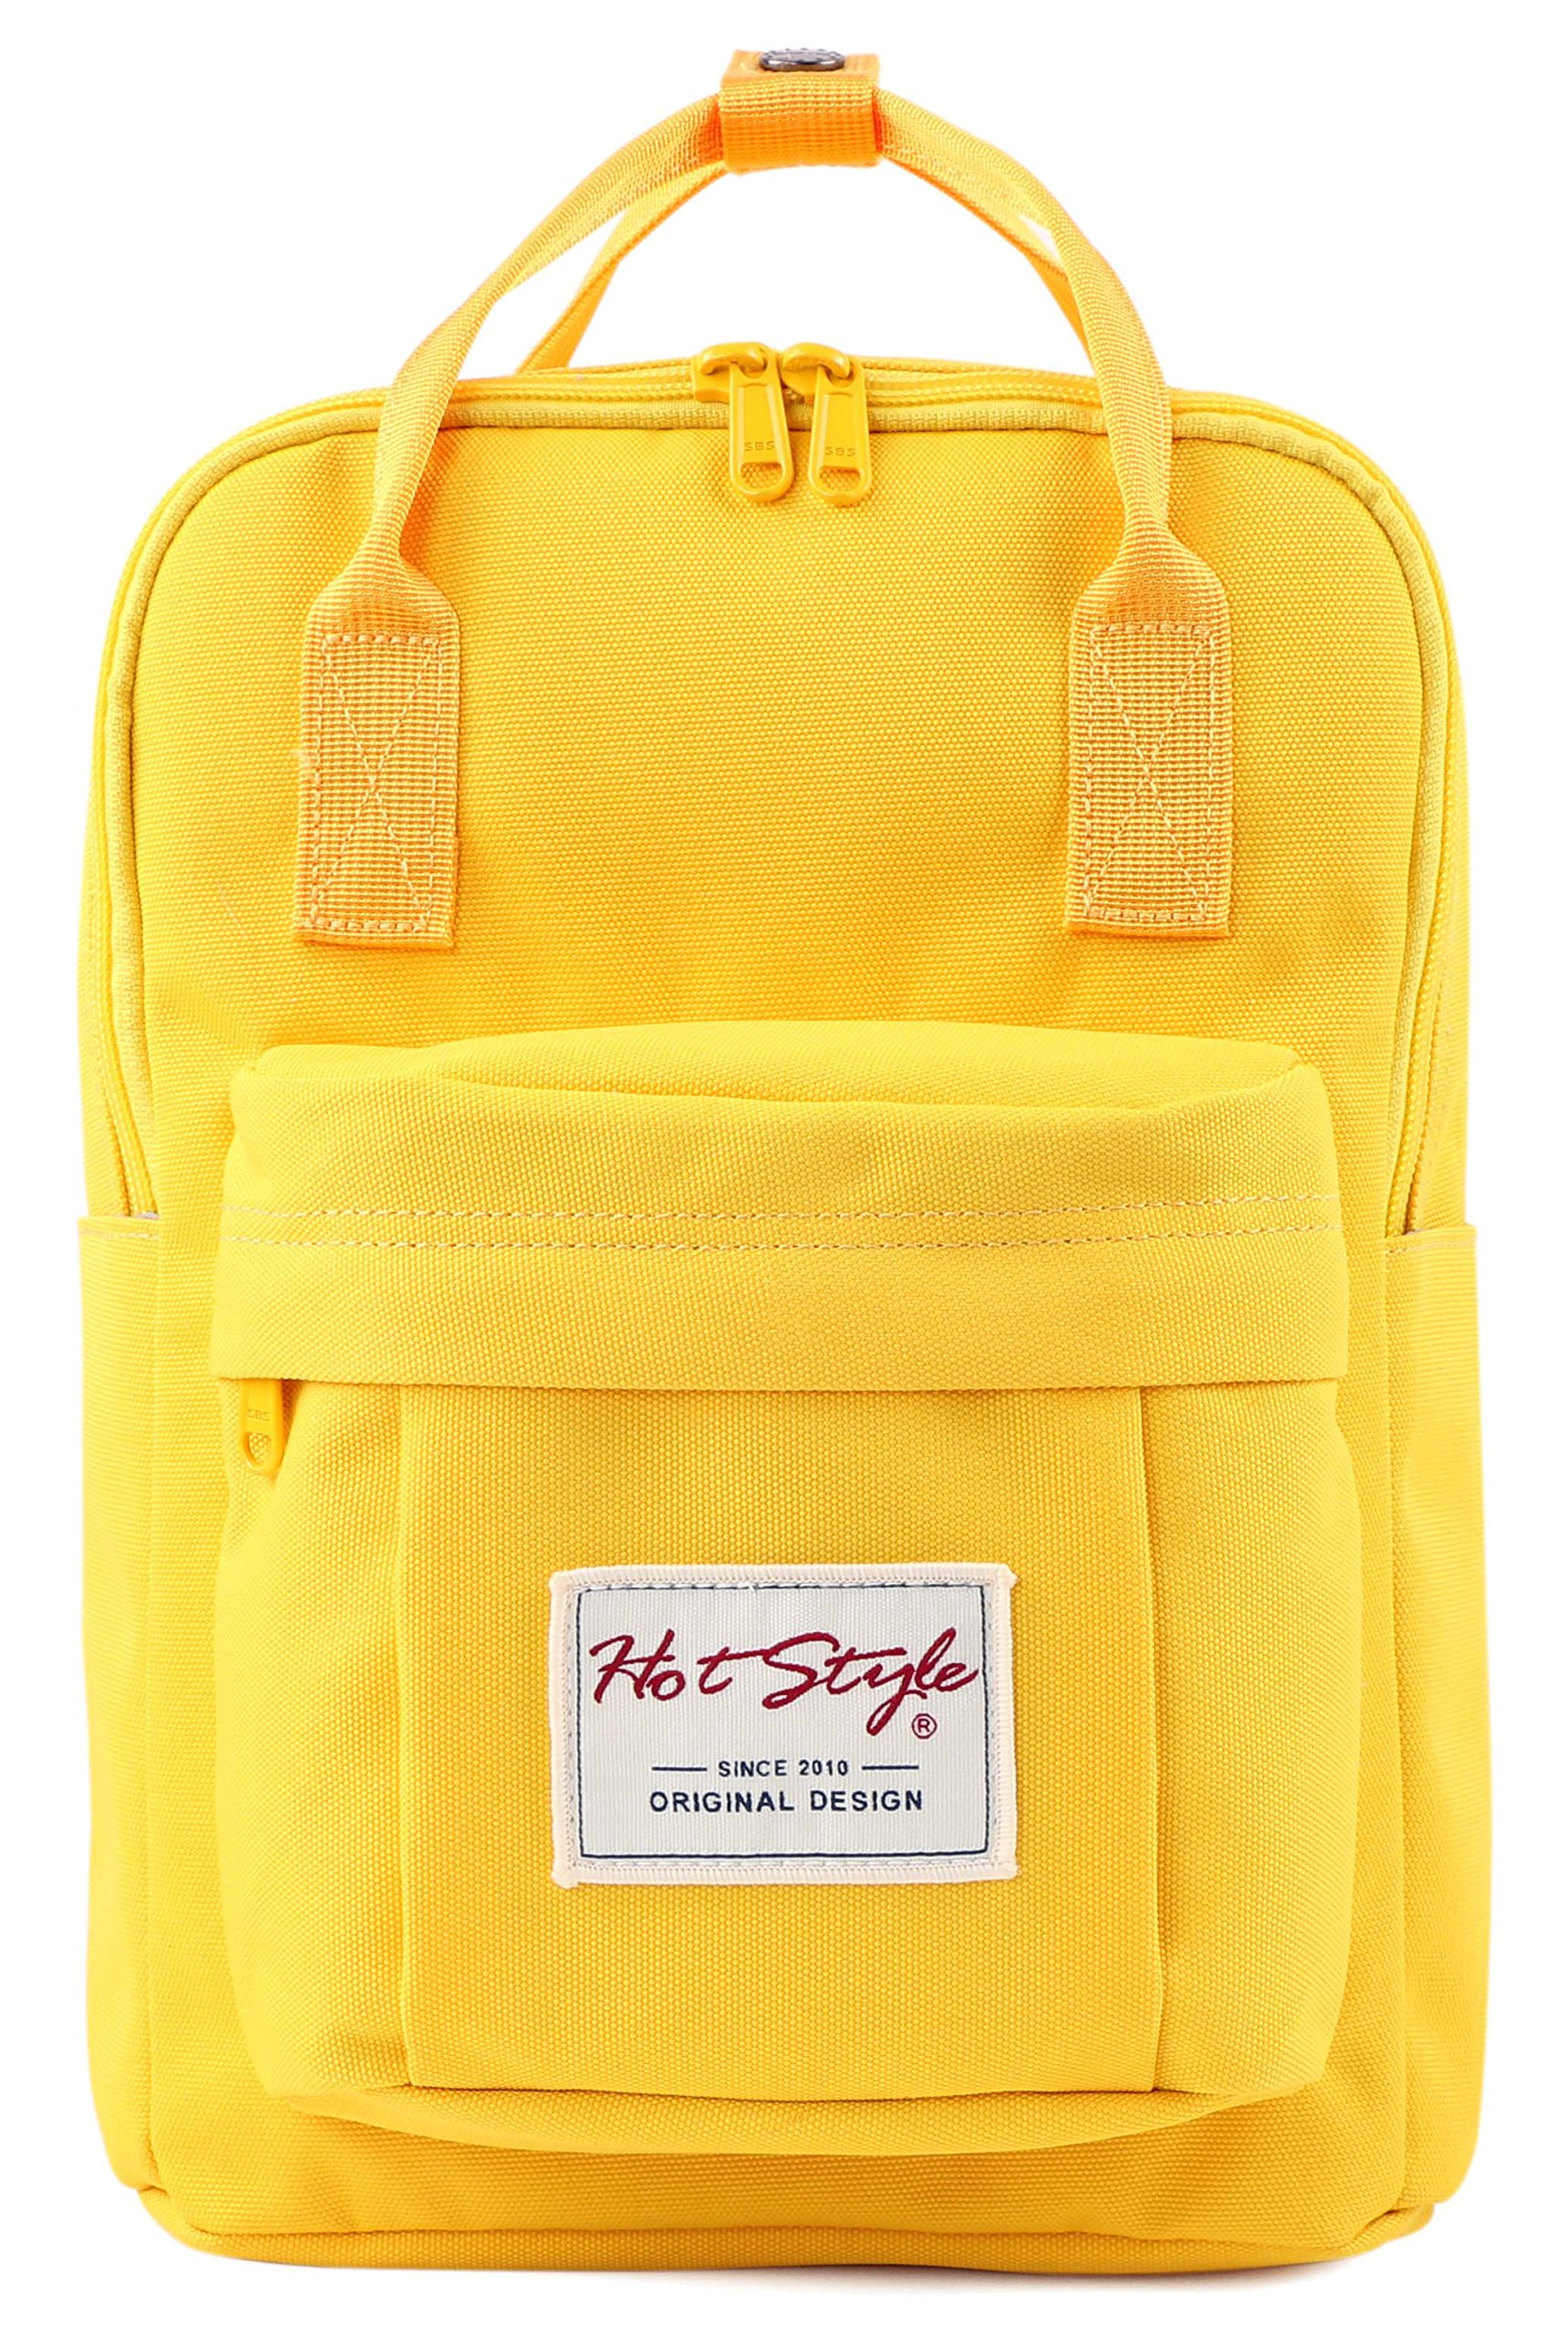 BESTIE 12'' Cute Mini Small Backpack Purse Travel Bag, Yellow by HotStyle